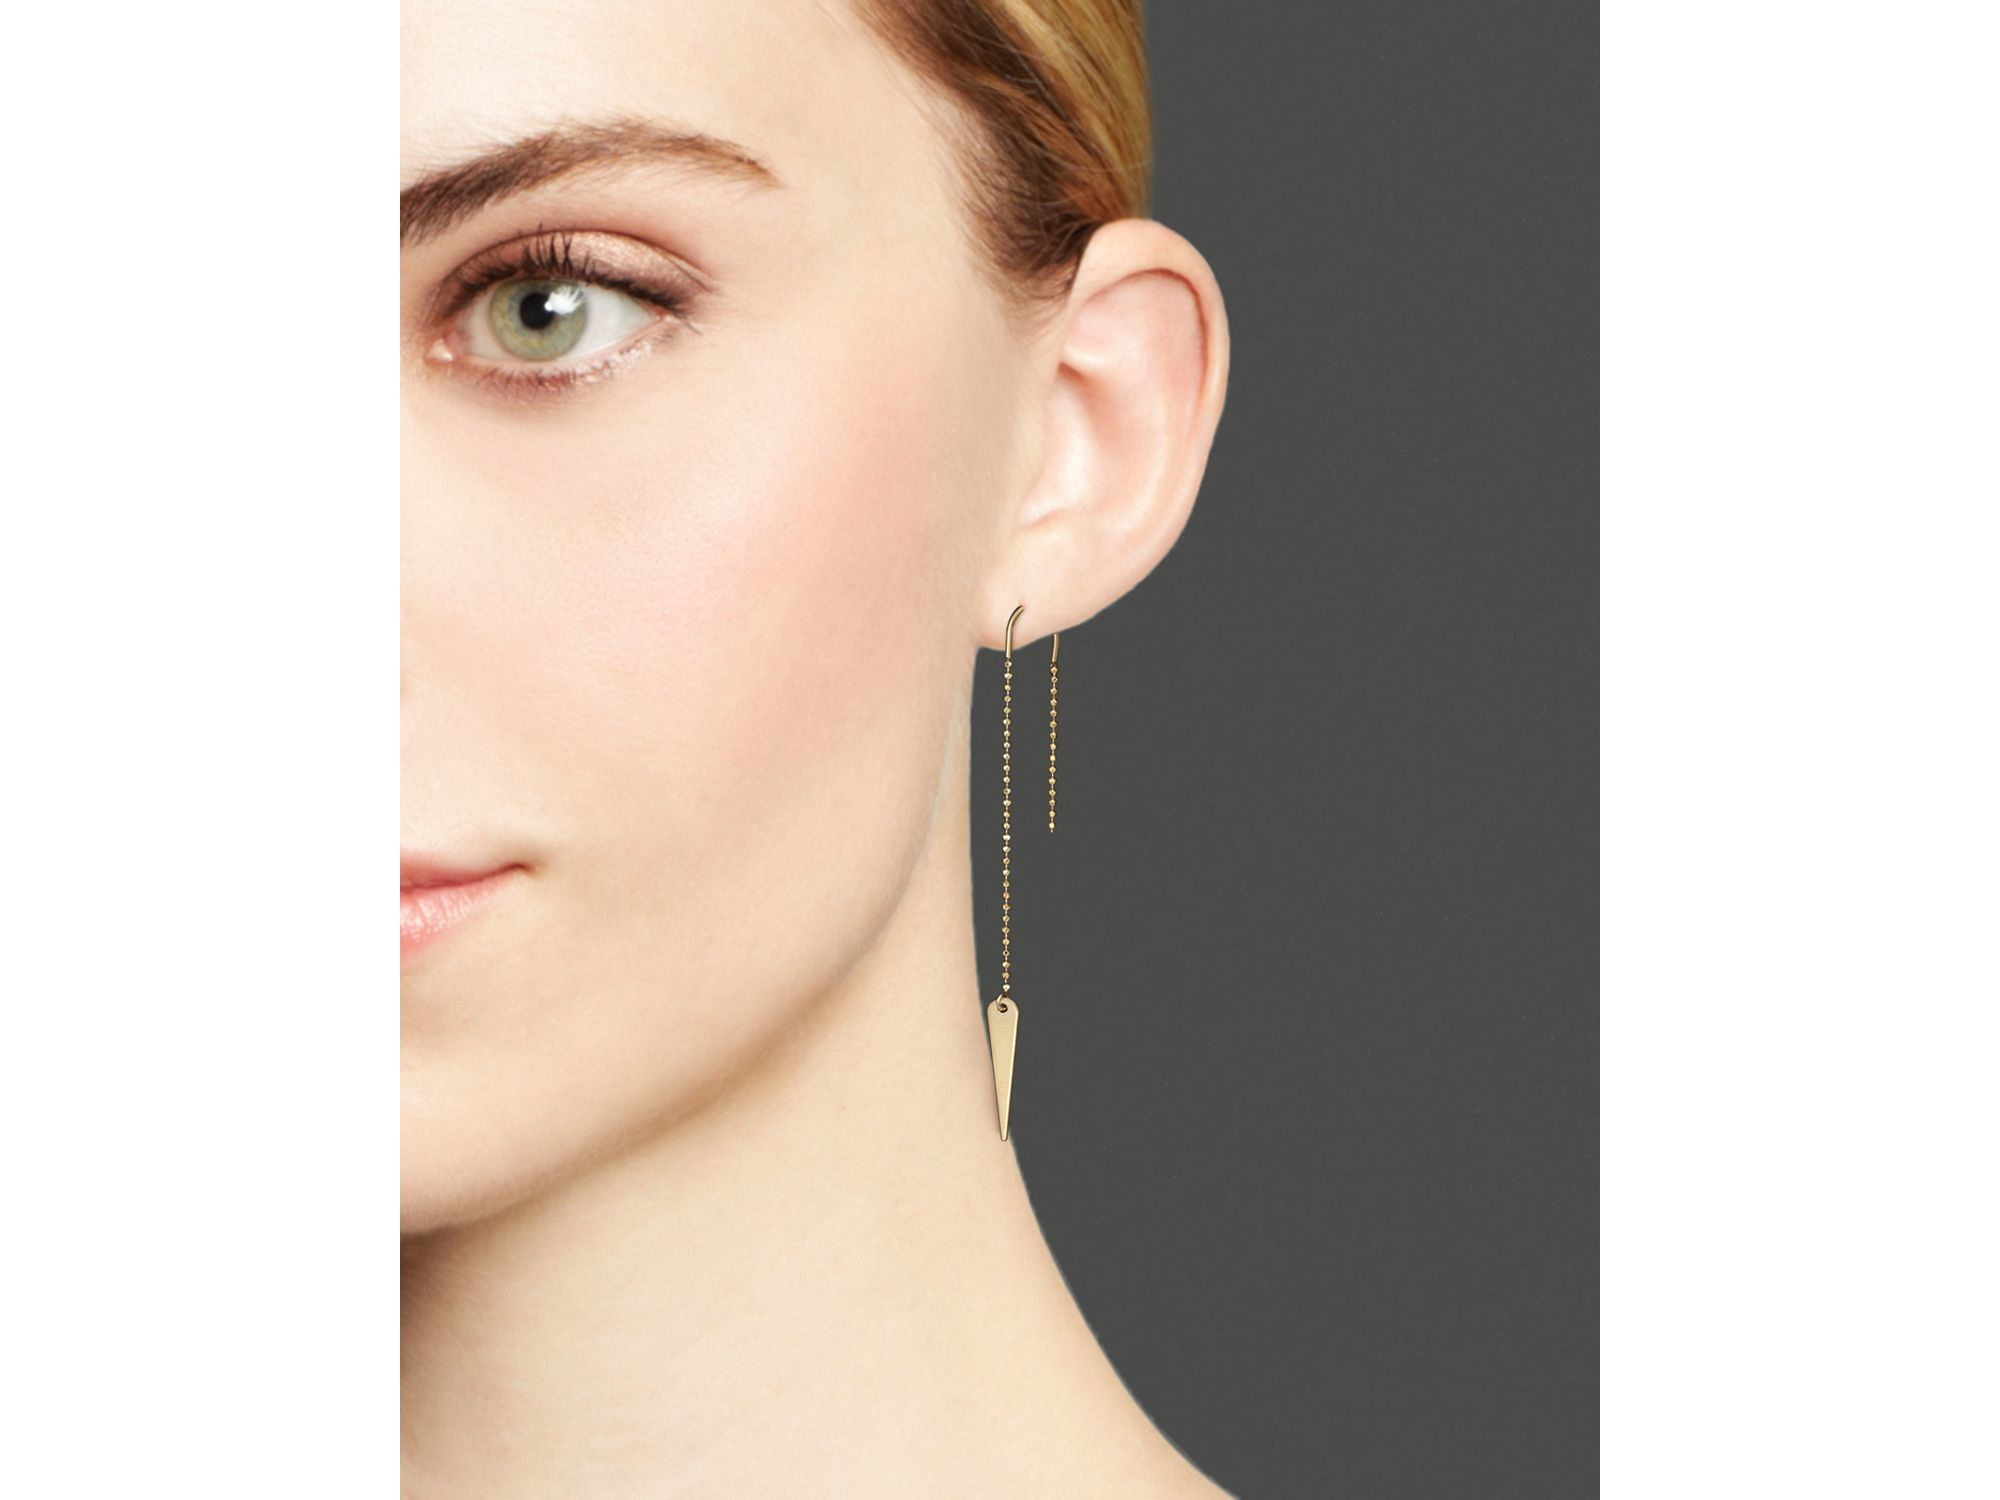 8af65cac1 Zoe Chicco 14k Gold Thorn Drop Earrings in Metallic - Lyst